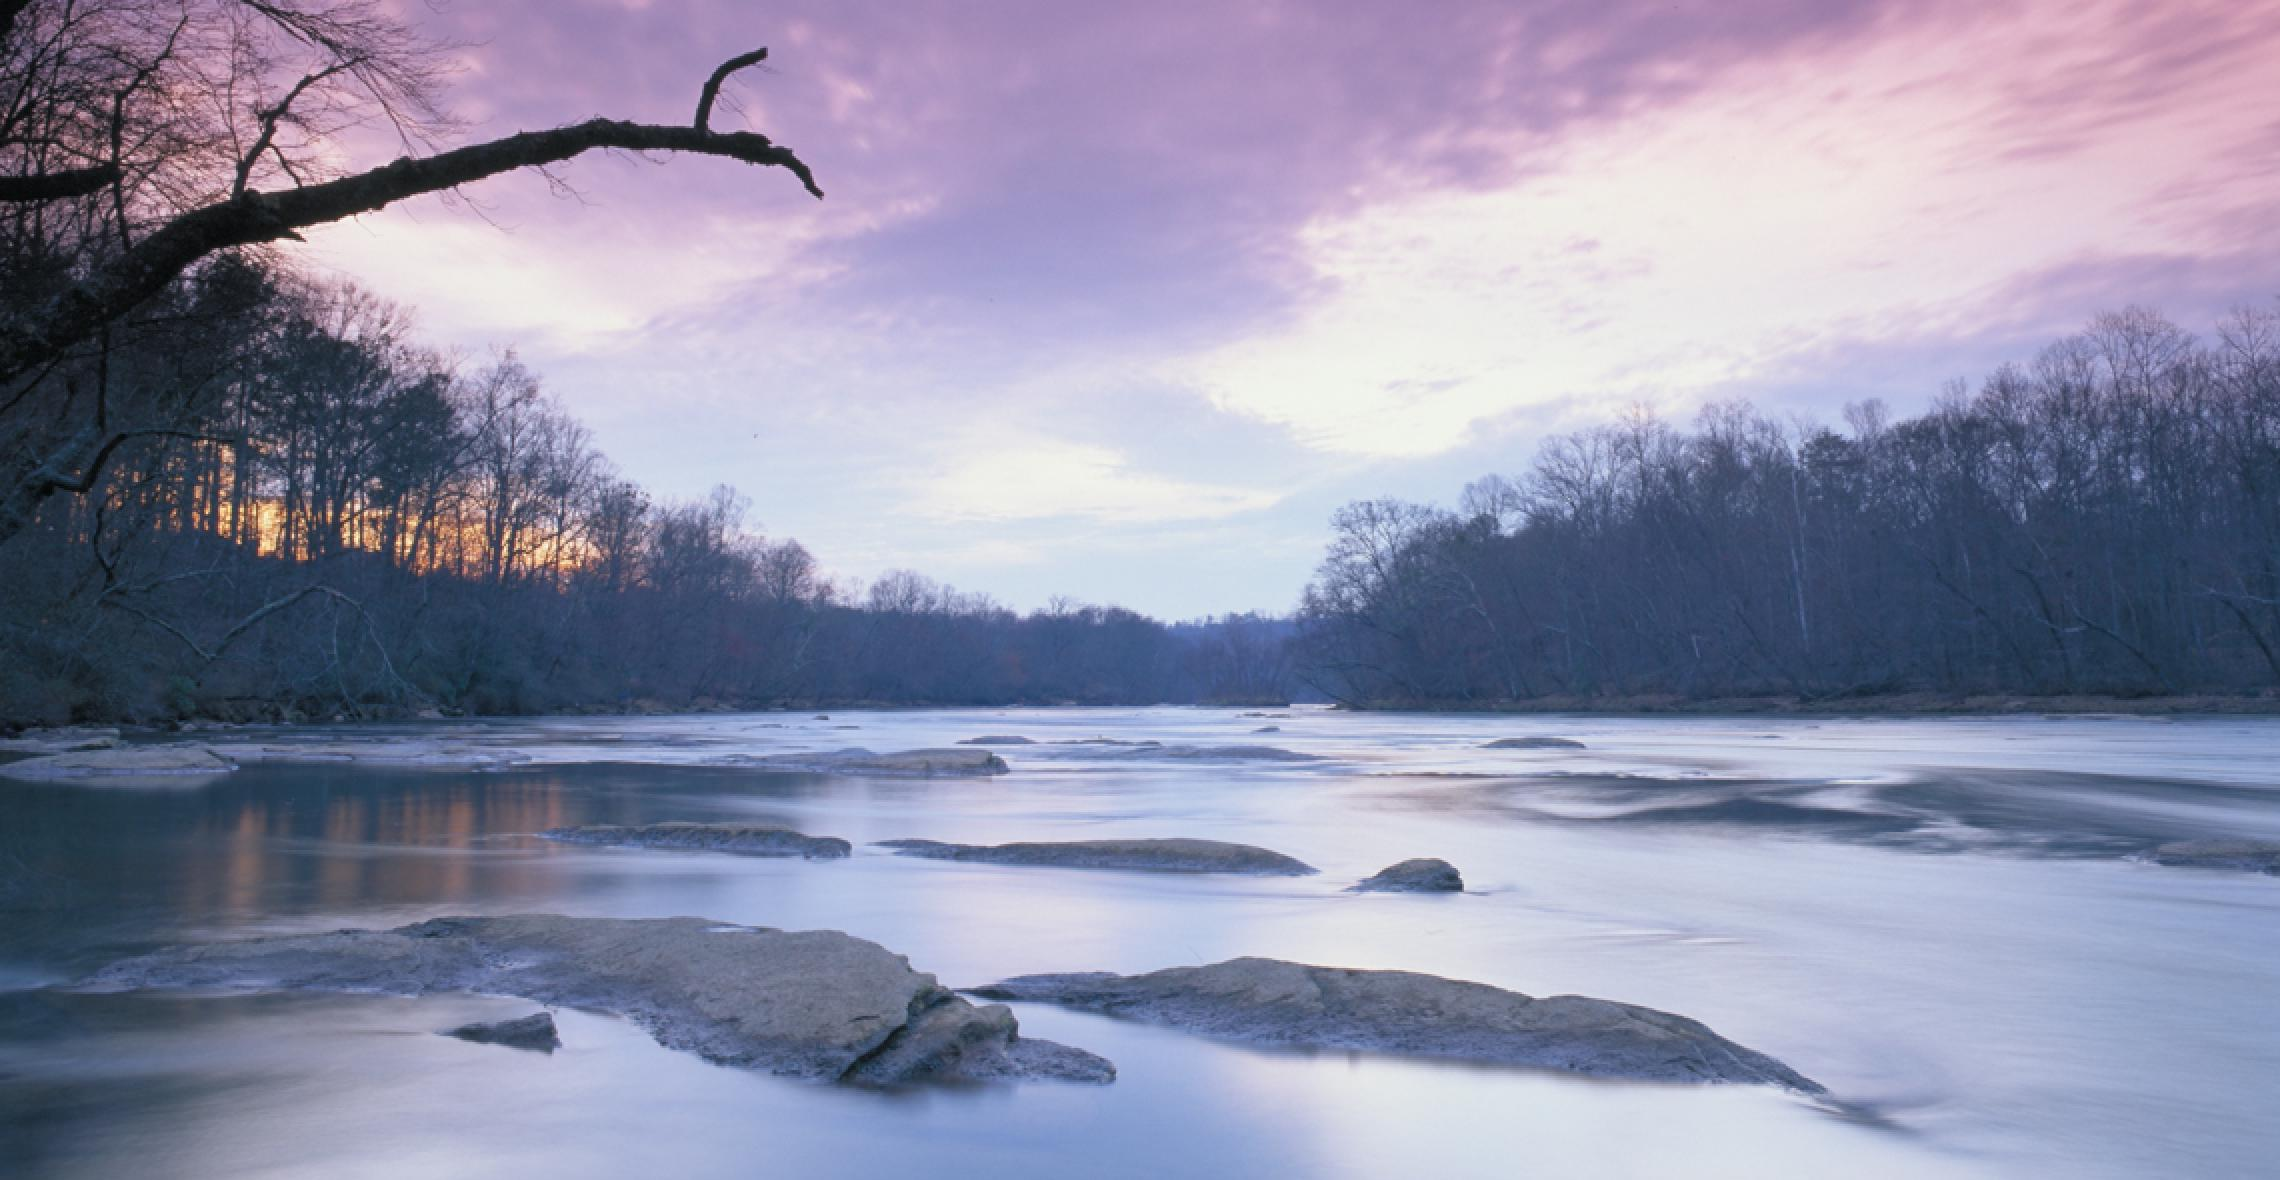 Chattahoochee-river-winter-sunset.jpg